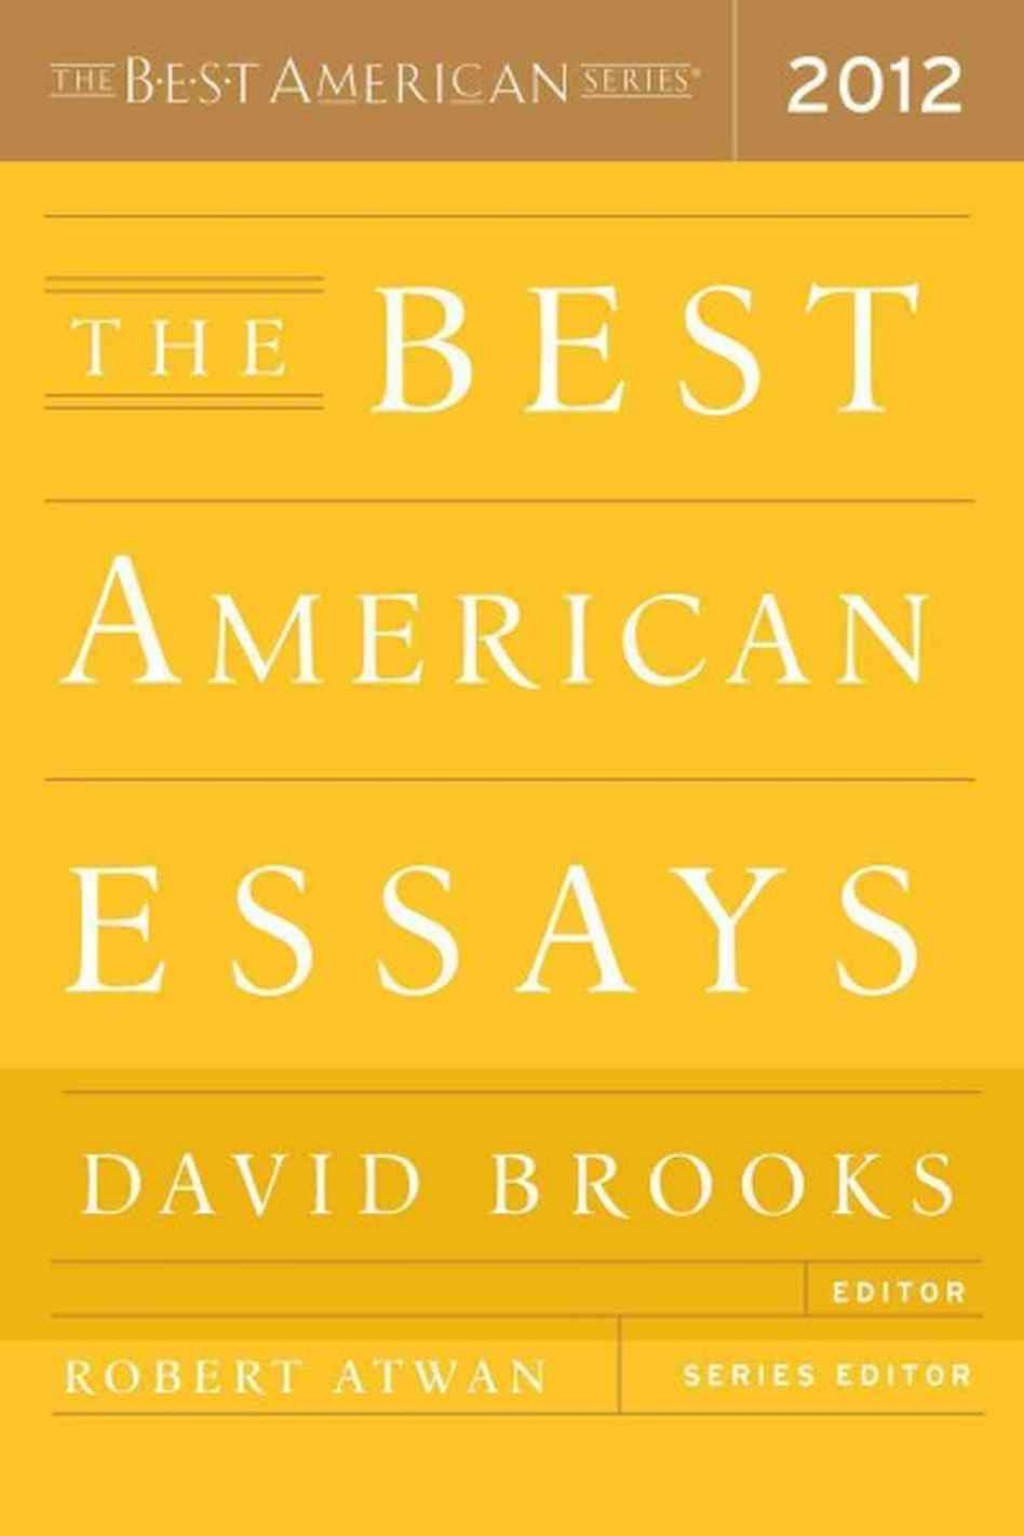 012 The Best American Essays 2012 Essay Wonderful 2018 Pdf 2017 Table Of Contents 2015 Free Large